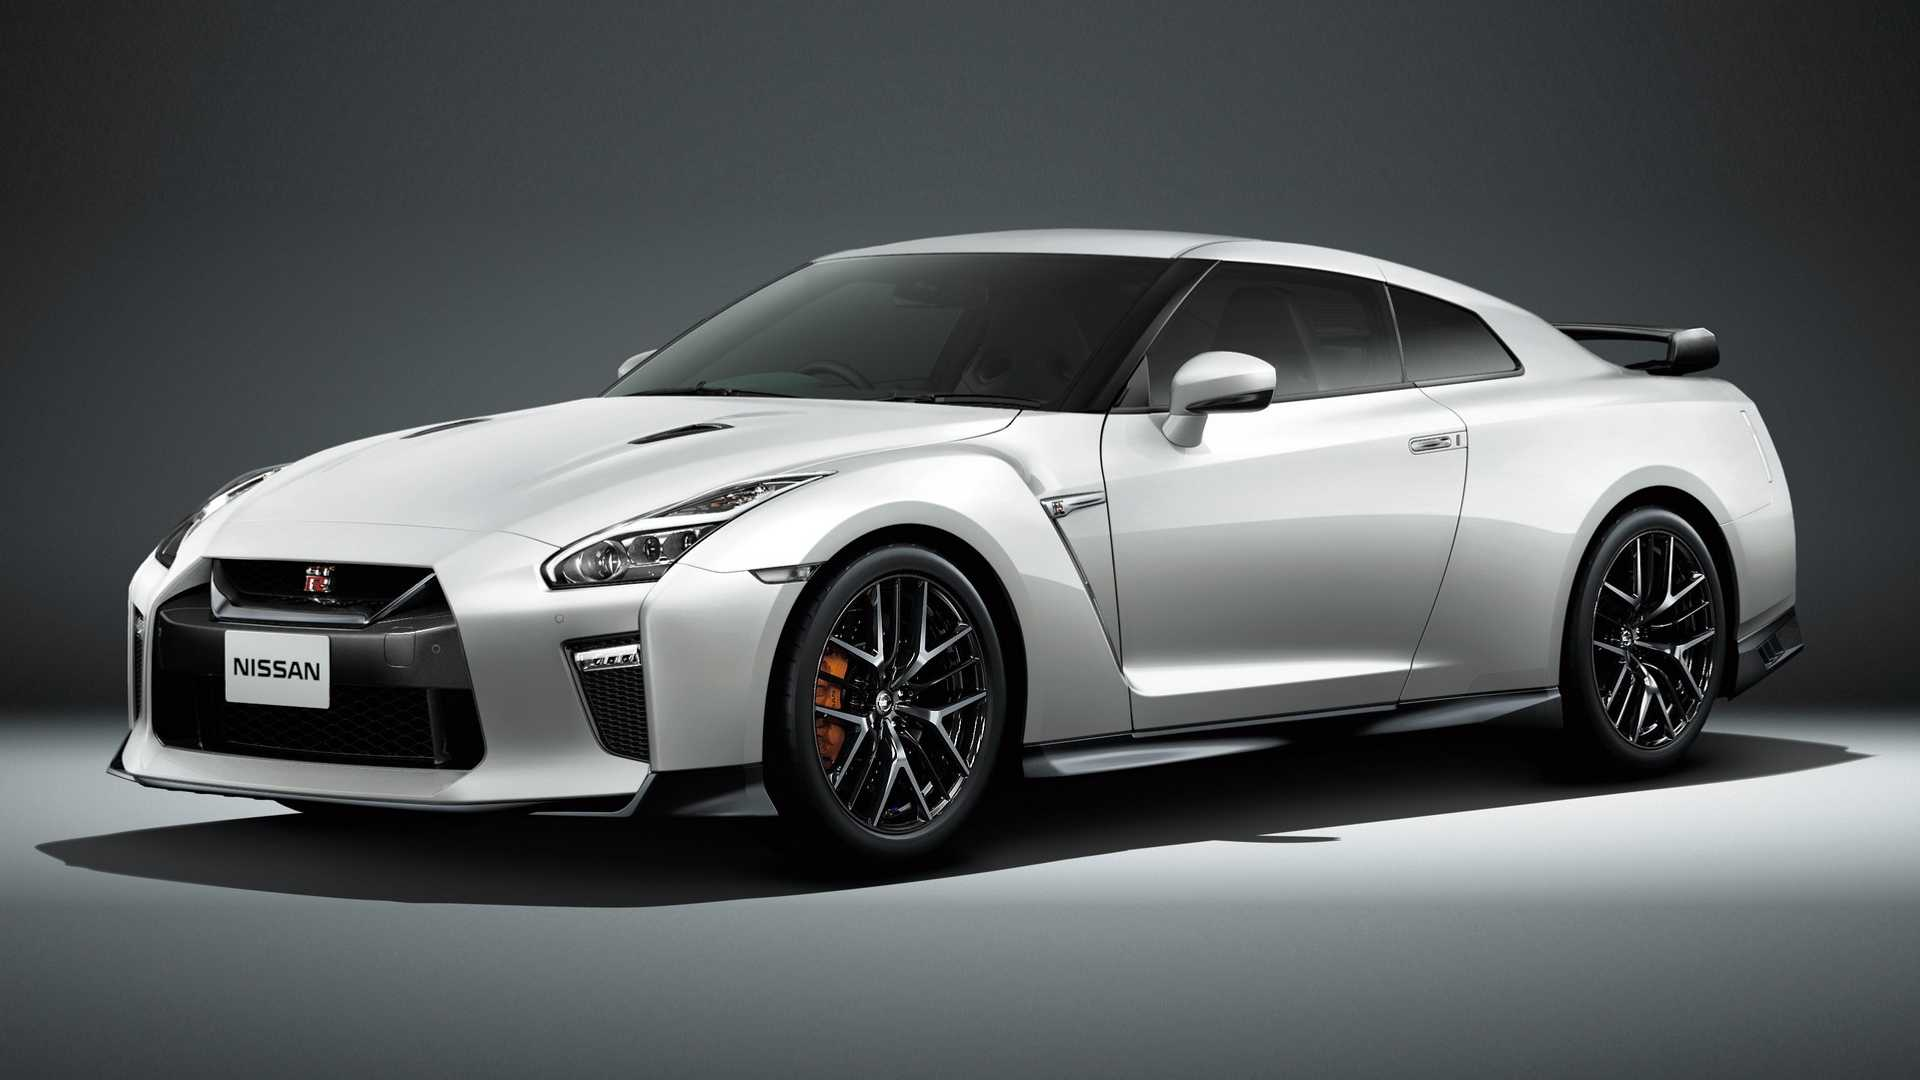 85 All New 2019 Nissan Gt R Reviews